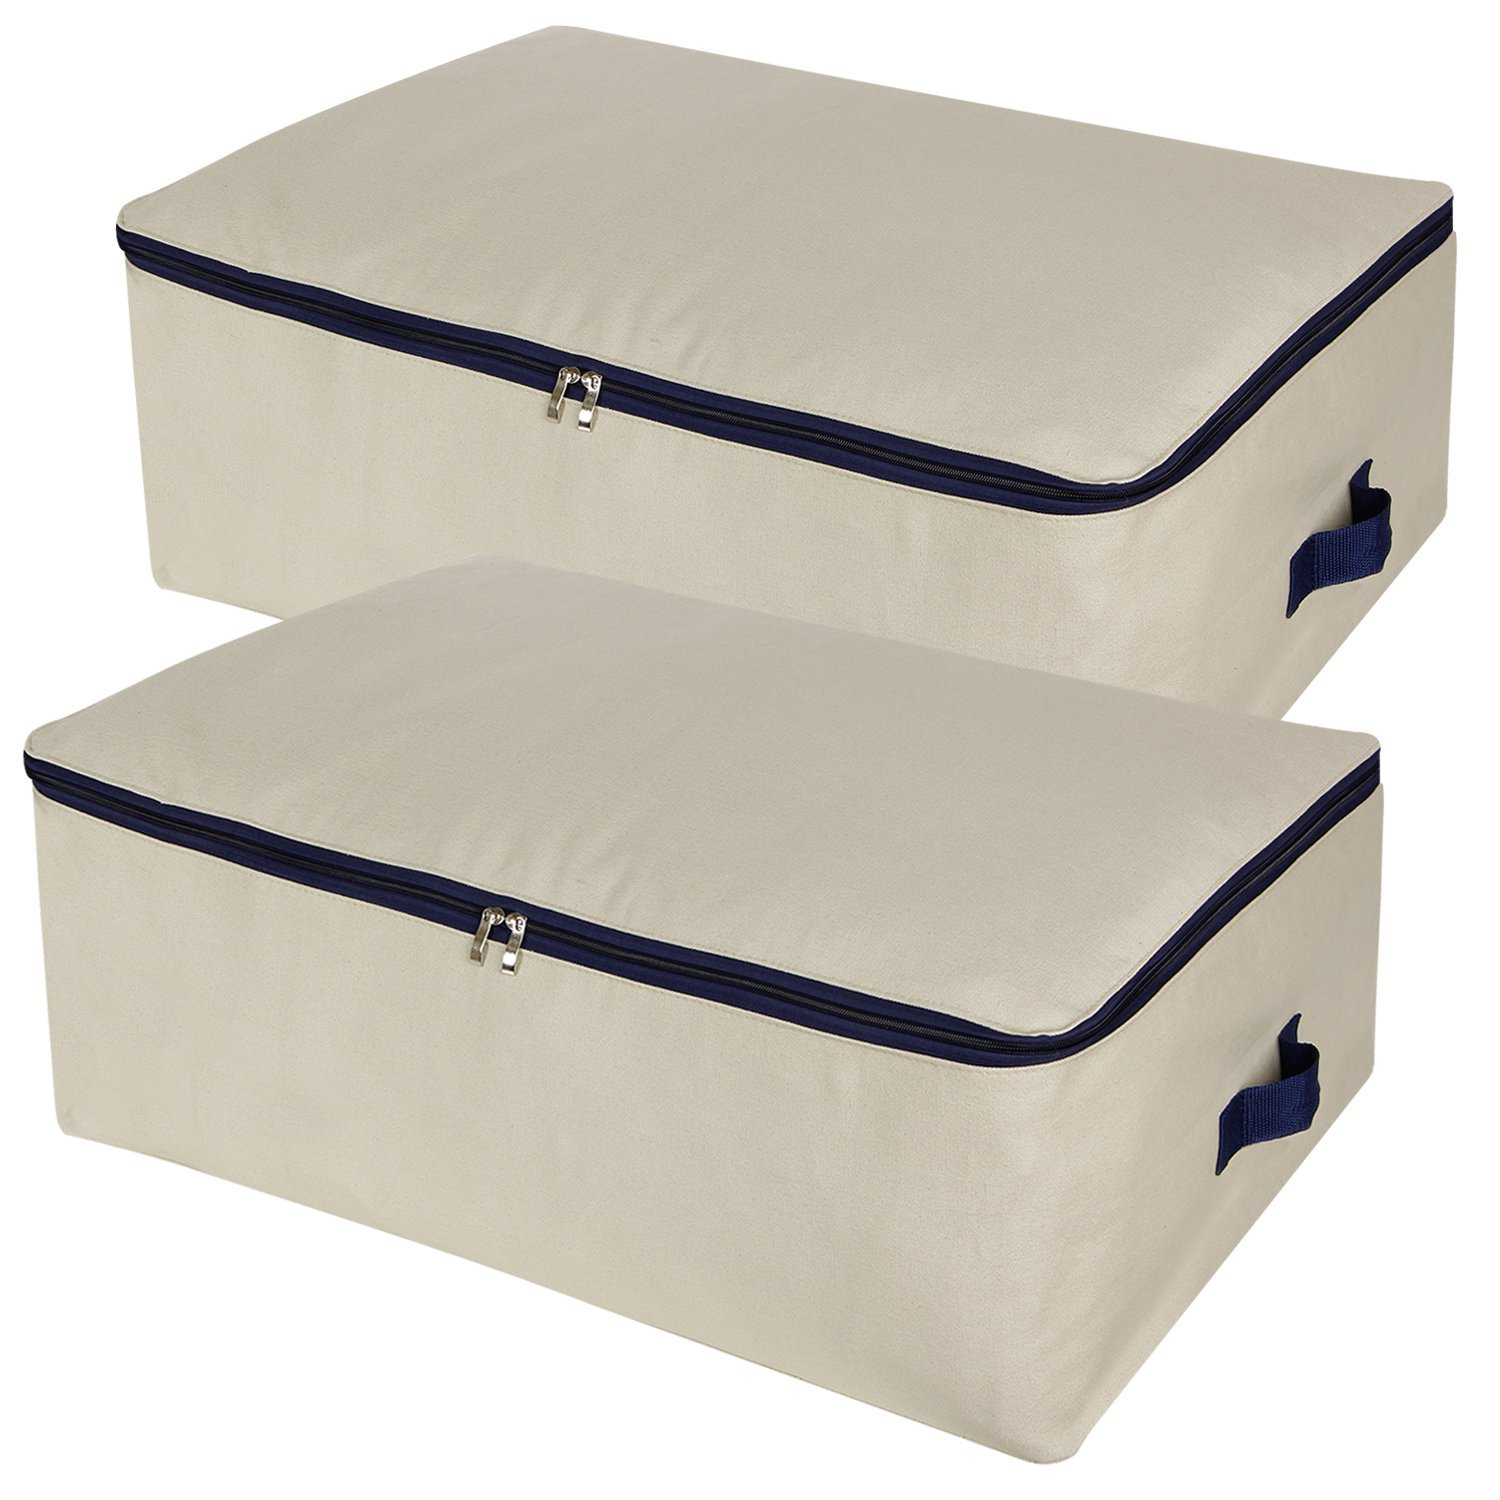 Lifewit 100L Storage Bags Large Capacity Foldable Thick Canvas Underbed Storage for Comforters, Clothes, Blankets, Bedding, 2 Pack by Lifewit